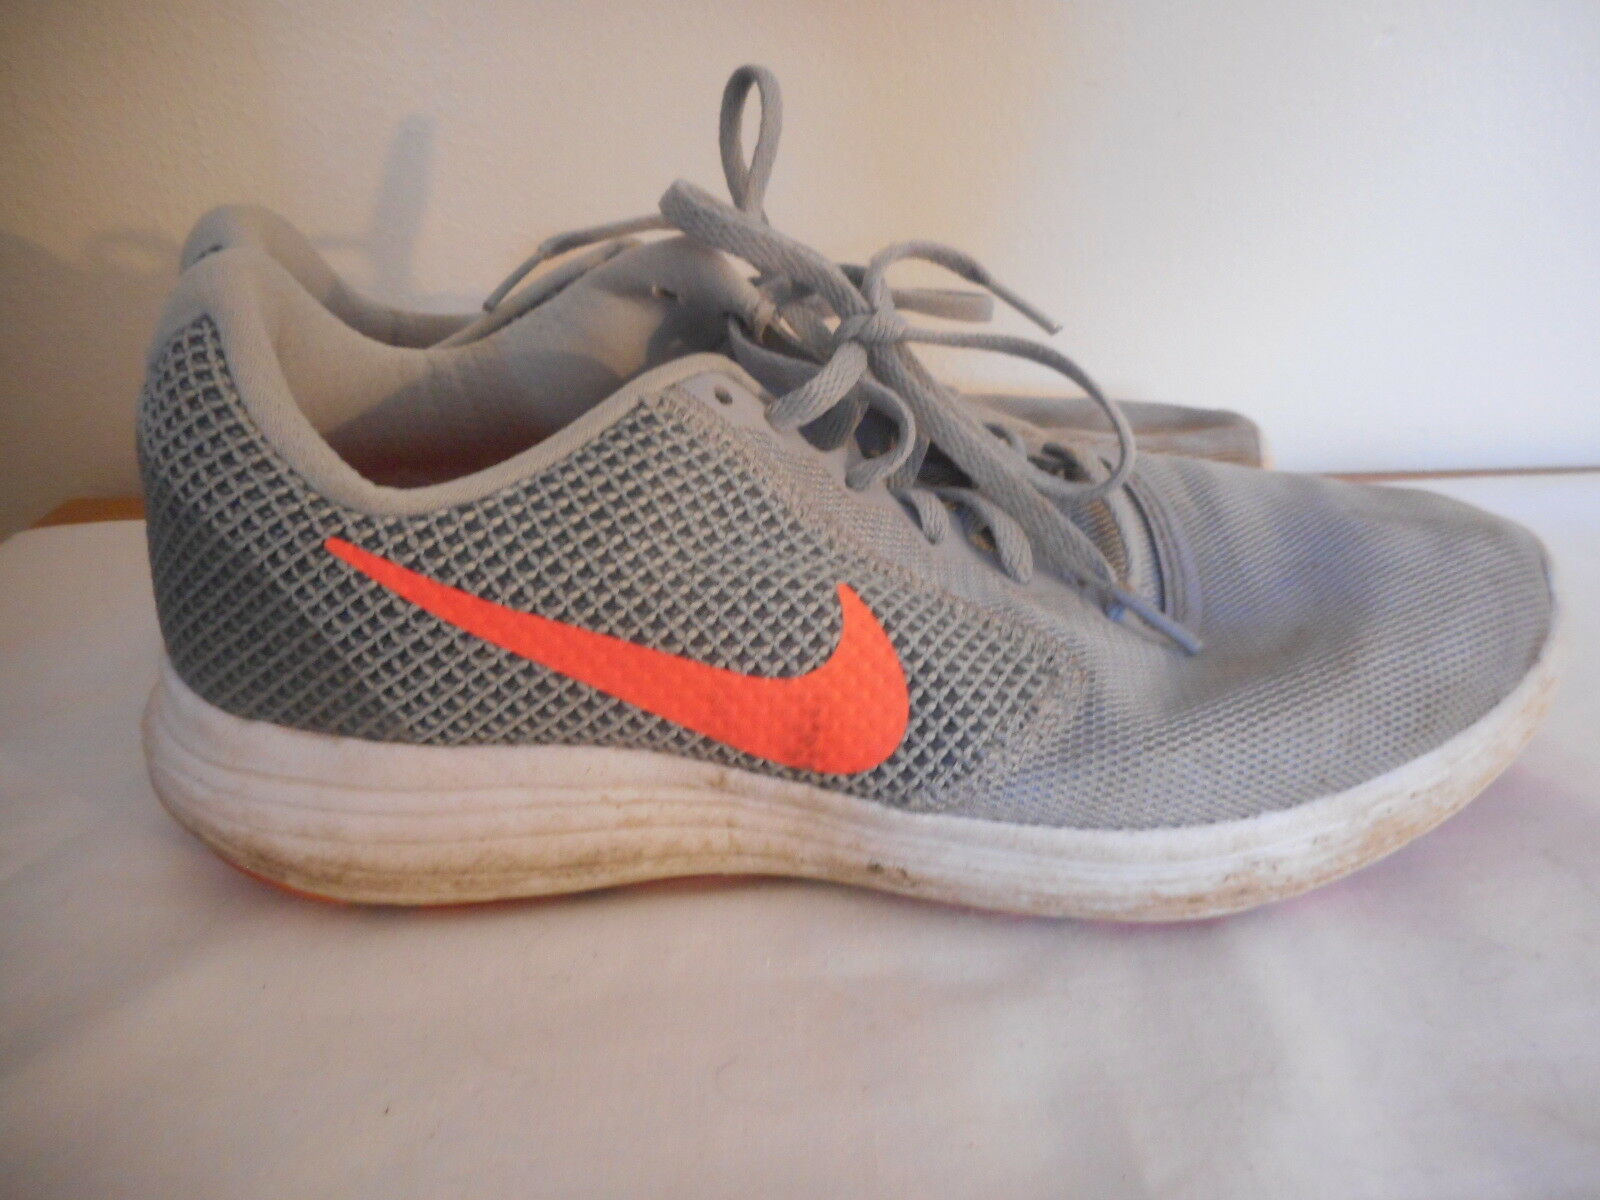 Nike Size 9 Womens Grey Orange Athletic Shoes Sneakers